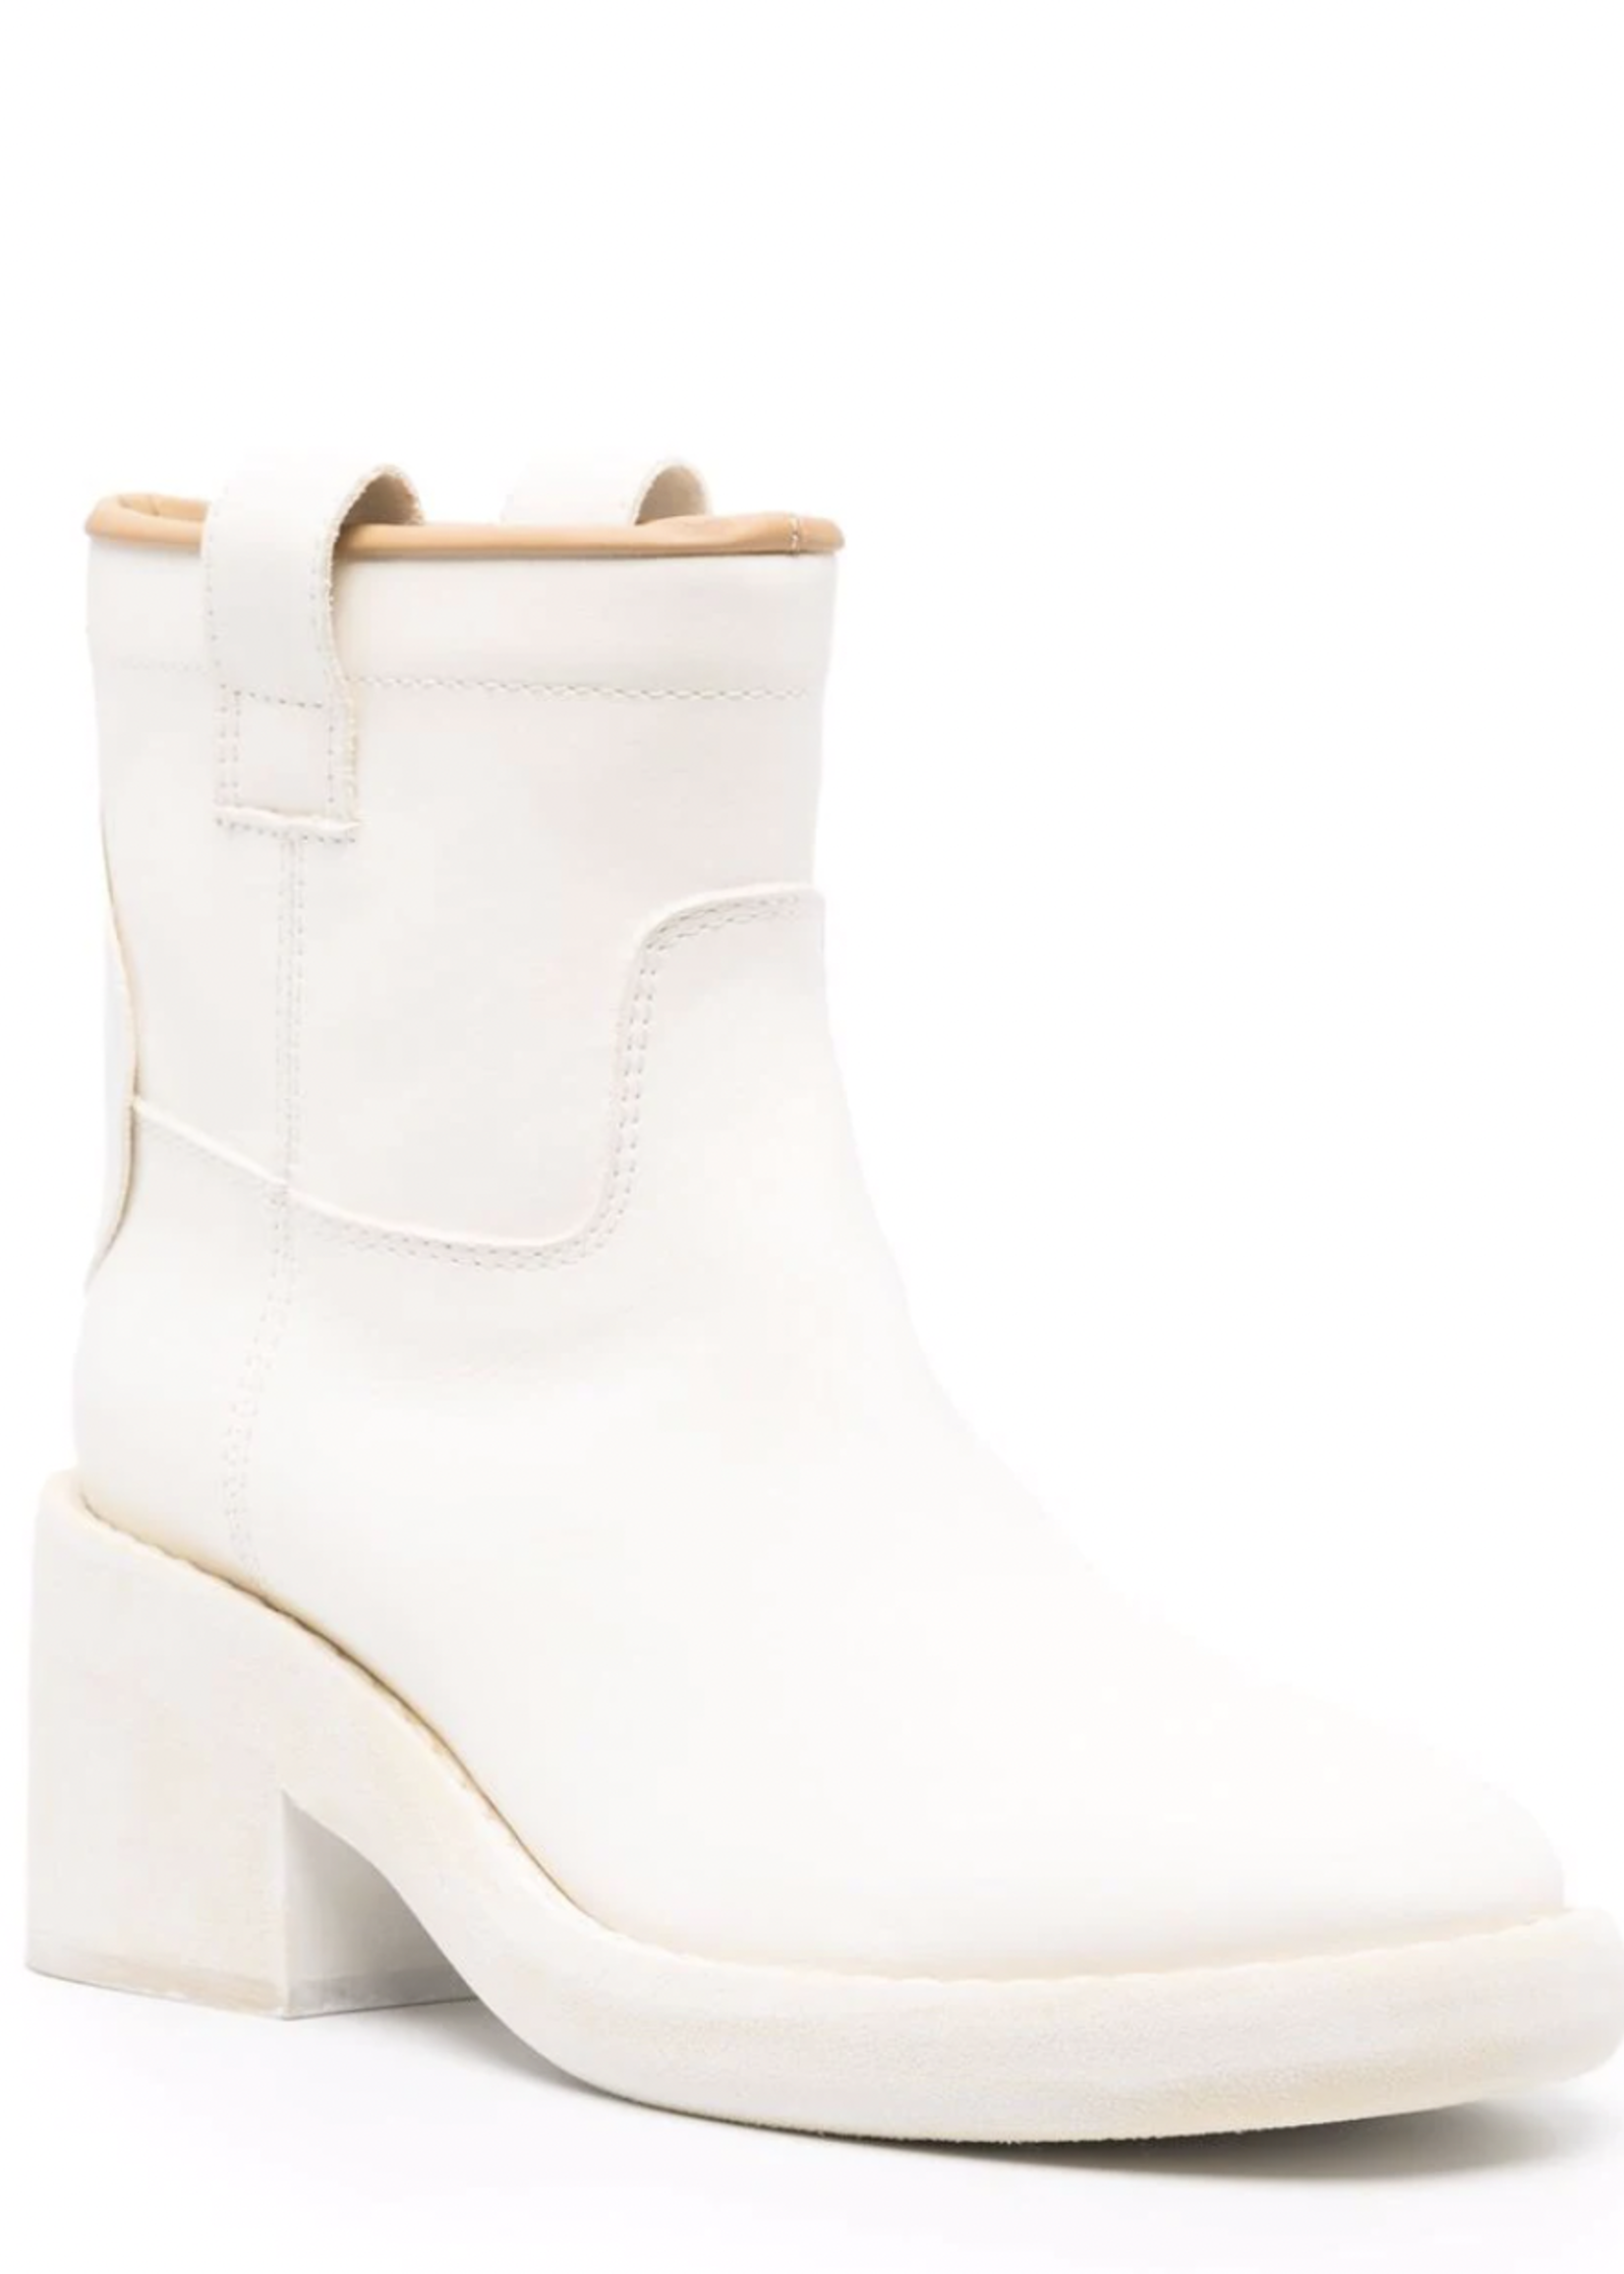 MM6 MAISON MARGIELA Biker Boot in White Painted Leather